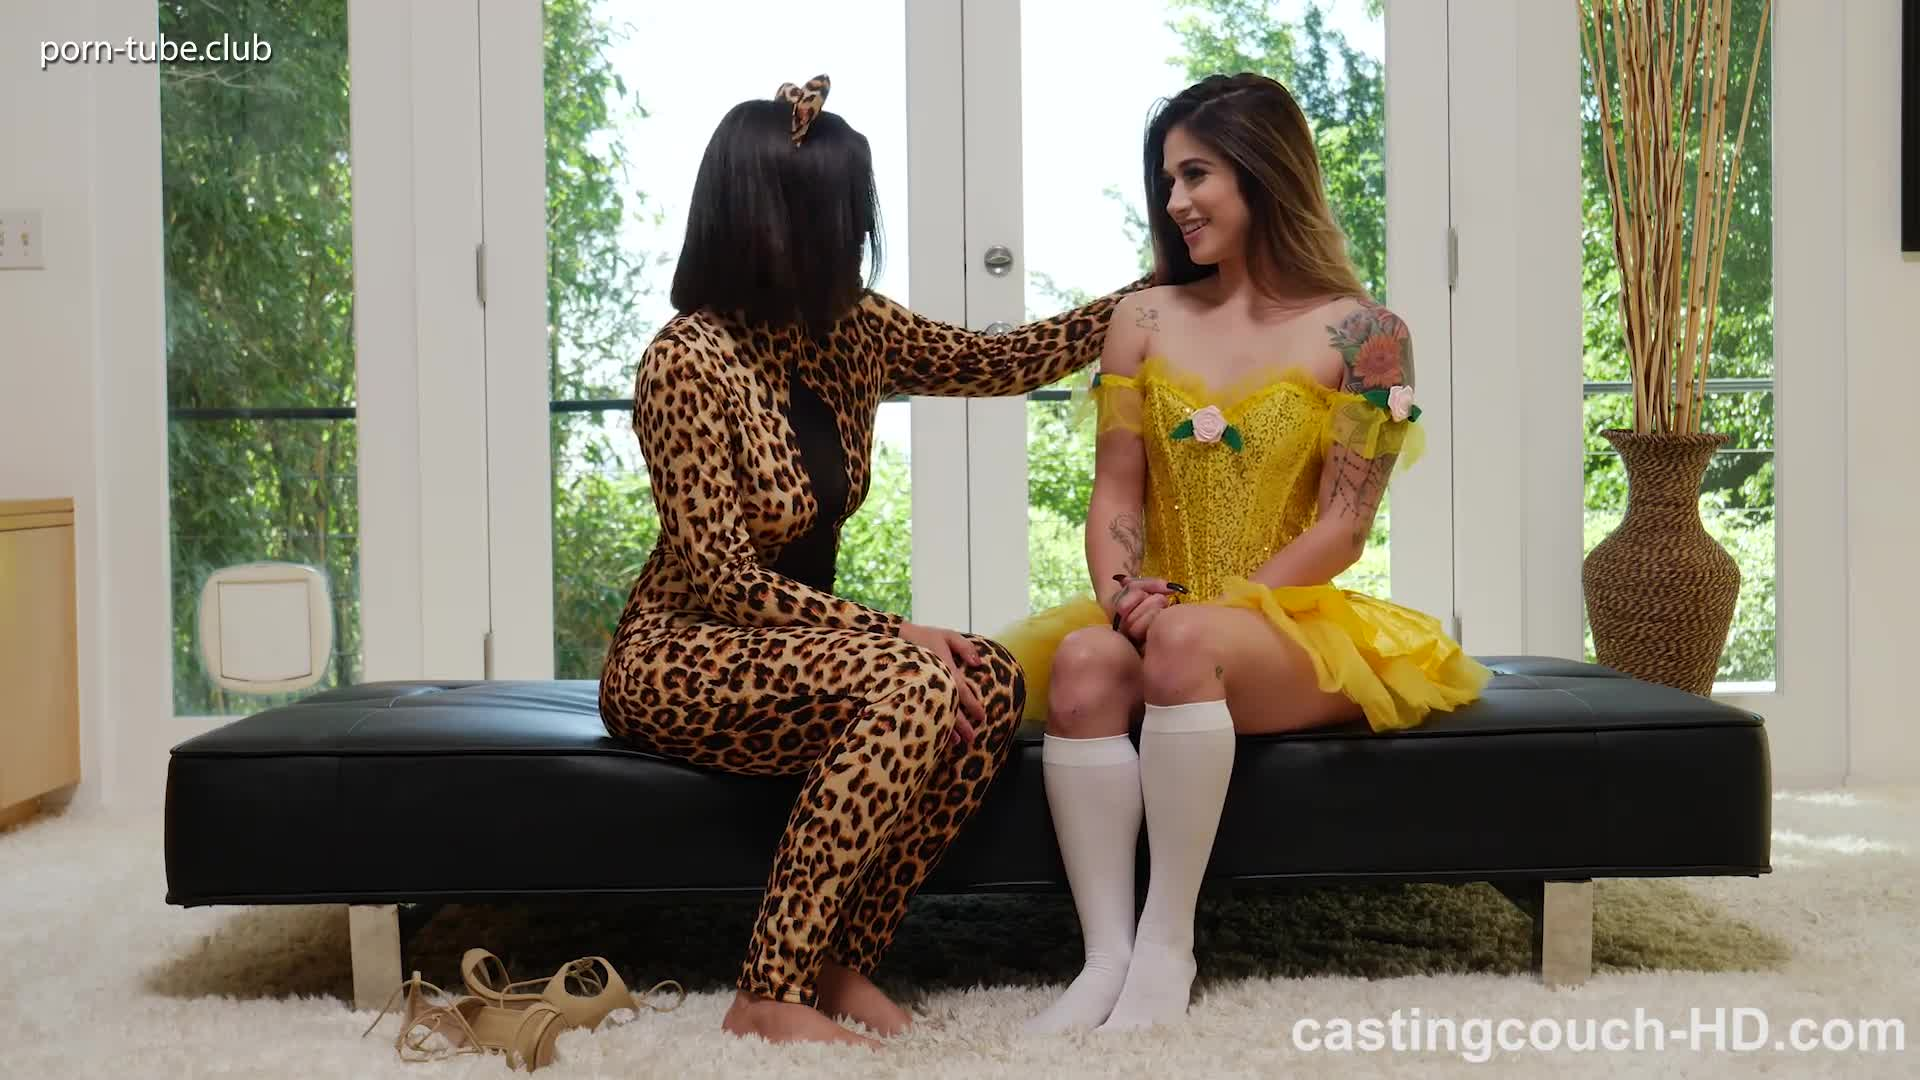 CastingCouch-HD 17.11.03 Holly And Kendra